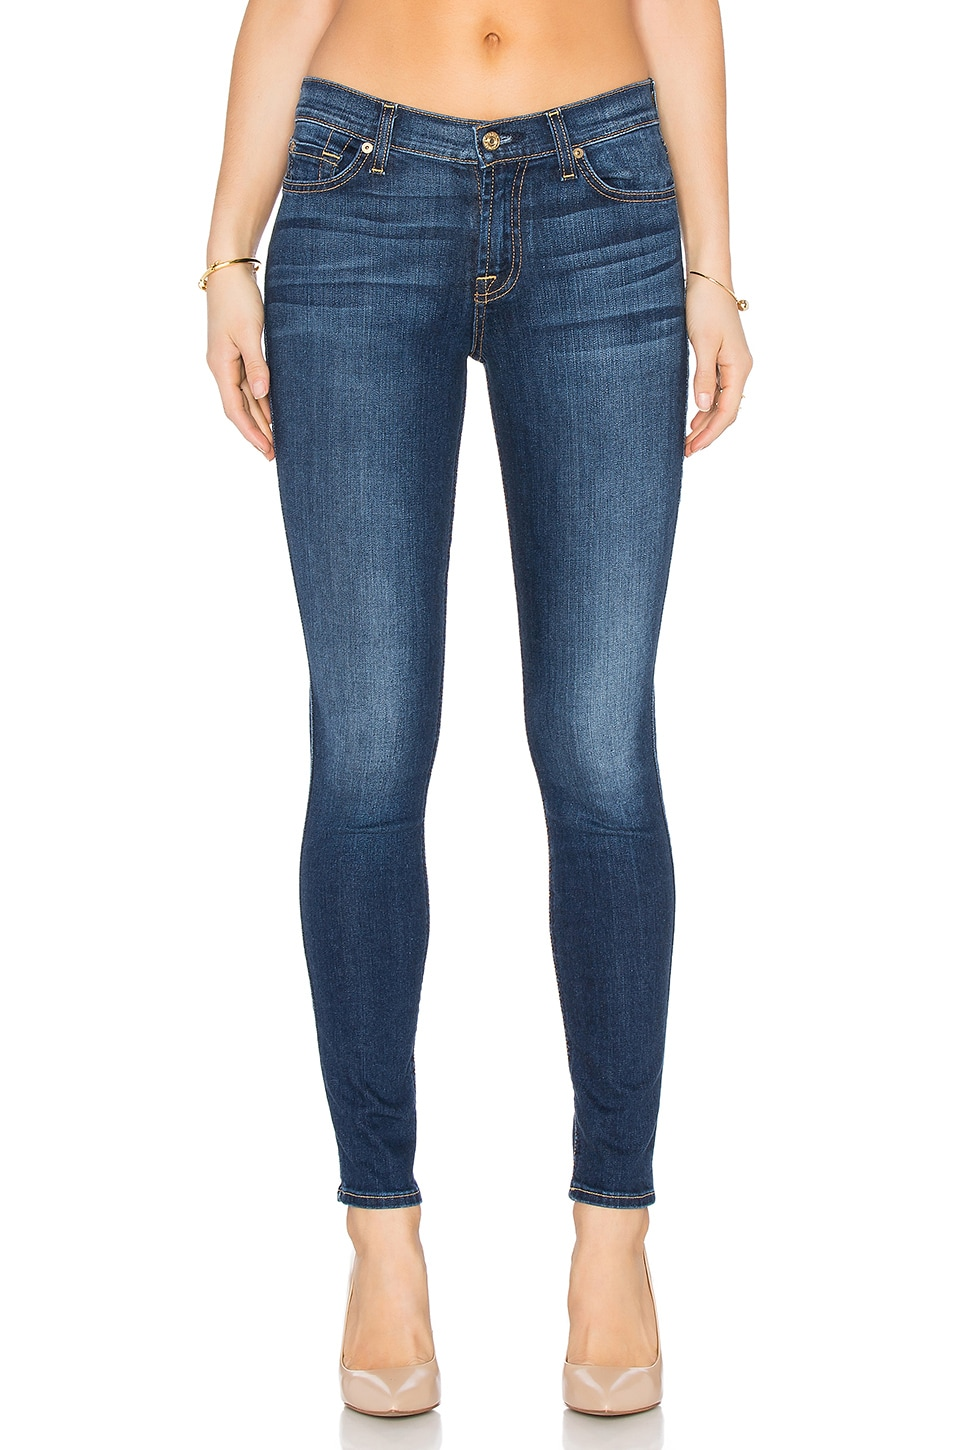 7 For All Mankind The Tonal Squiggle Skinny in Medium Timeless Blue